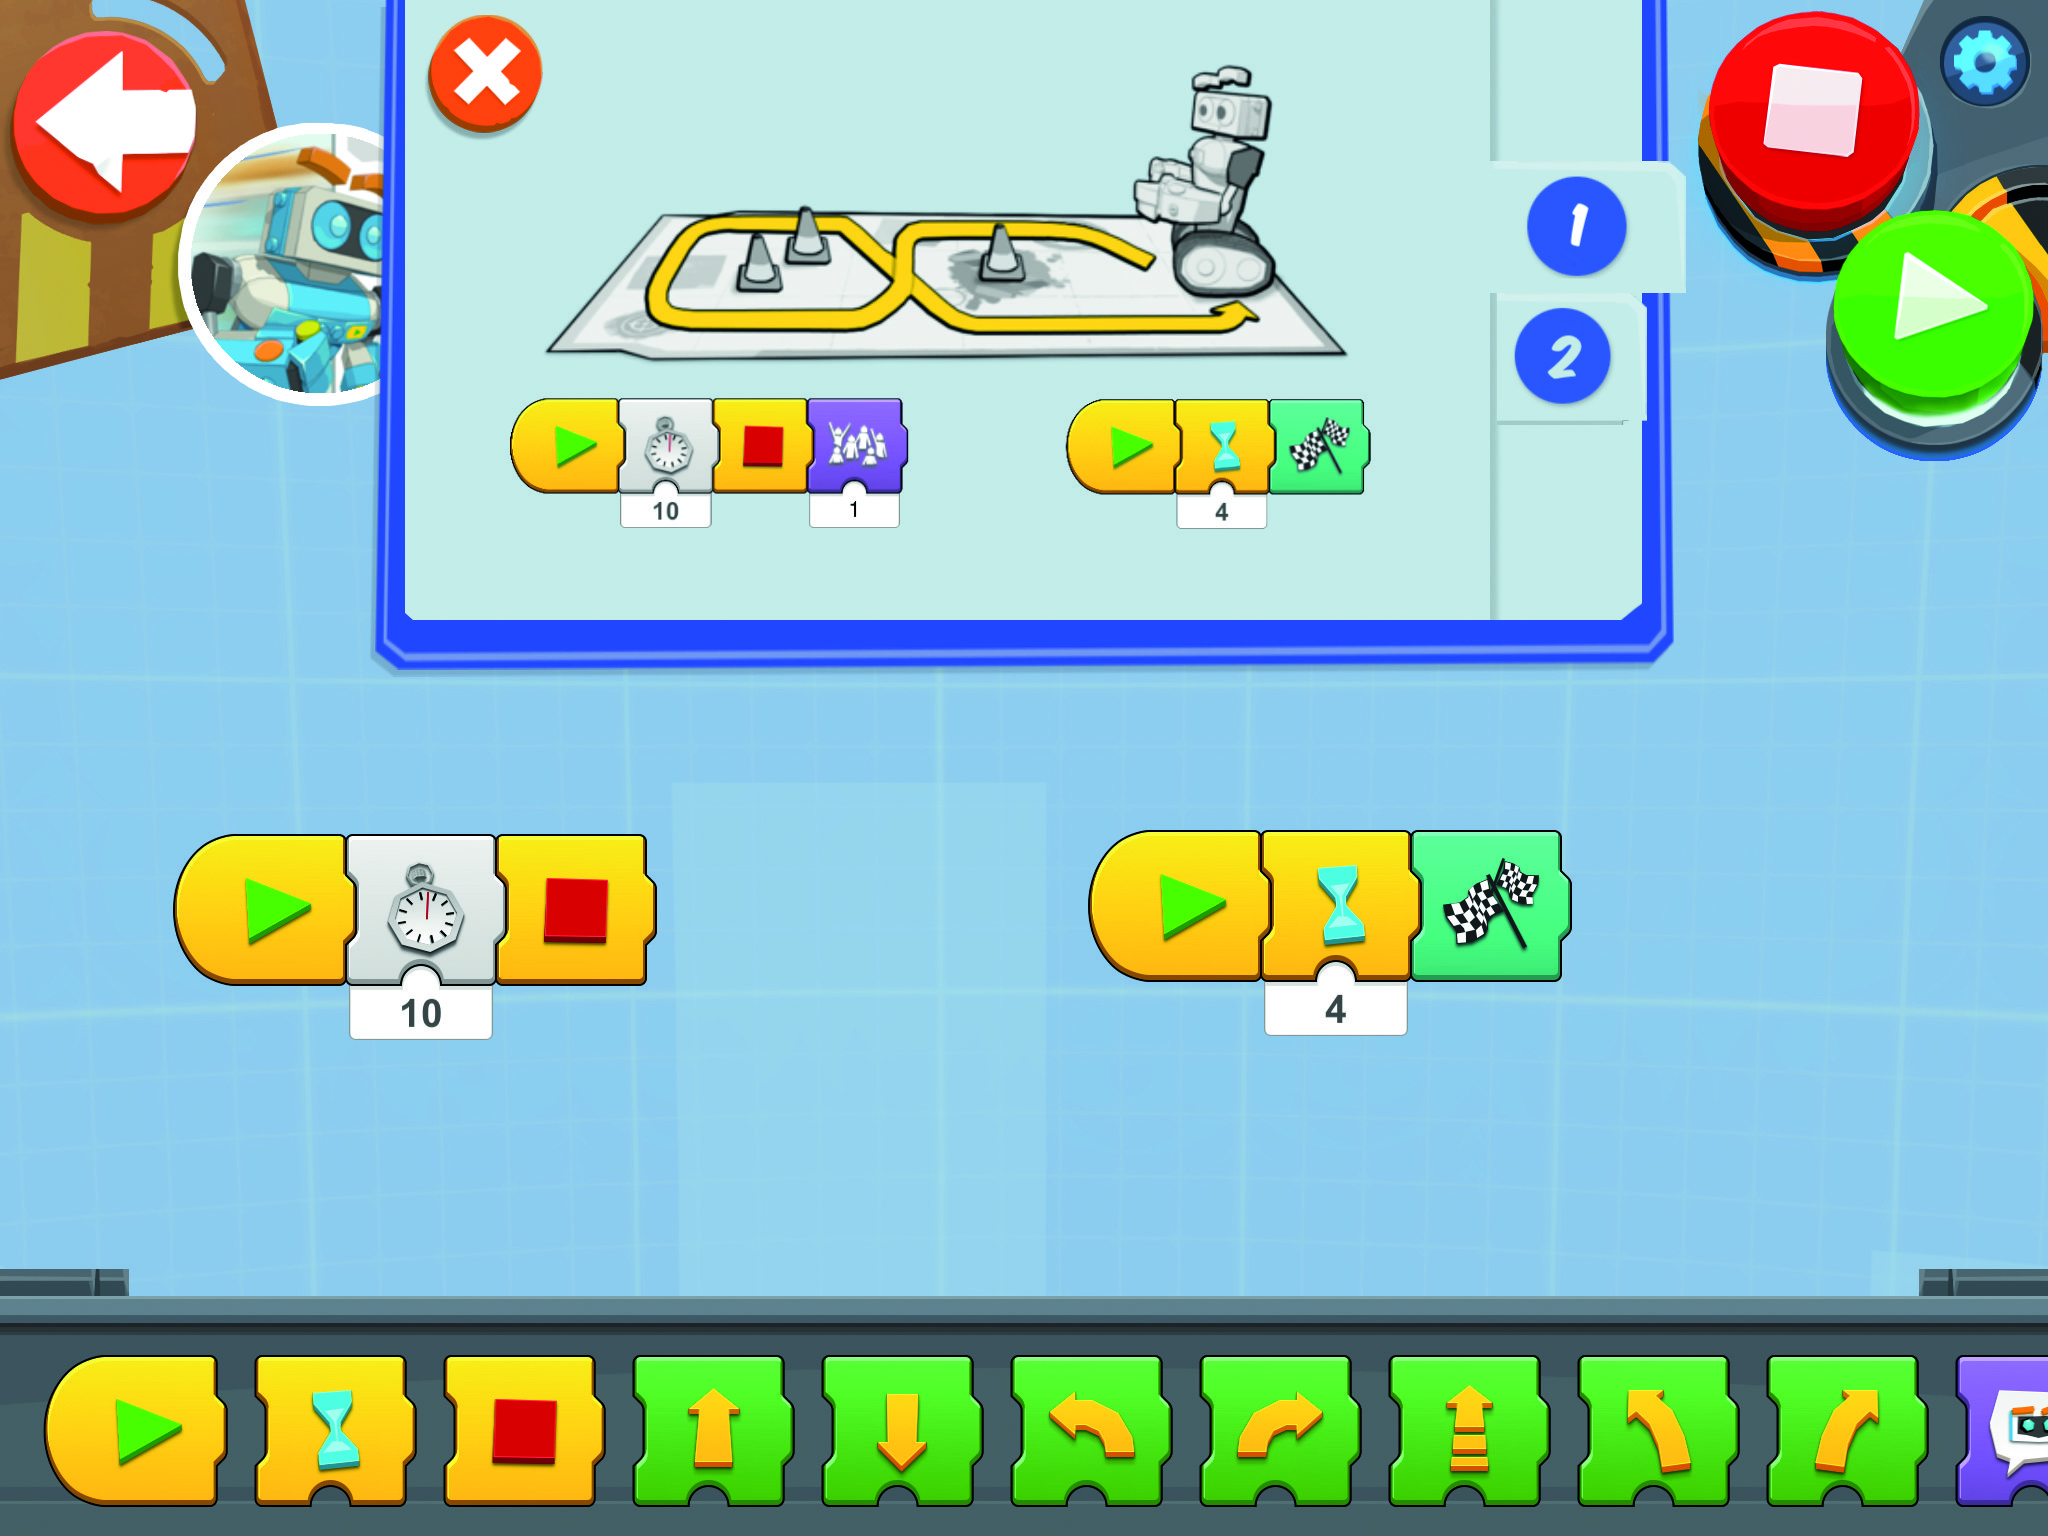 Figure 2 The Lego Boost program environment running on an iPad or Android